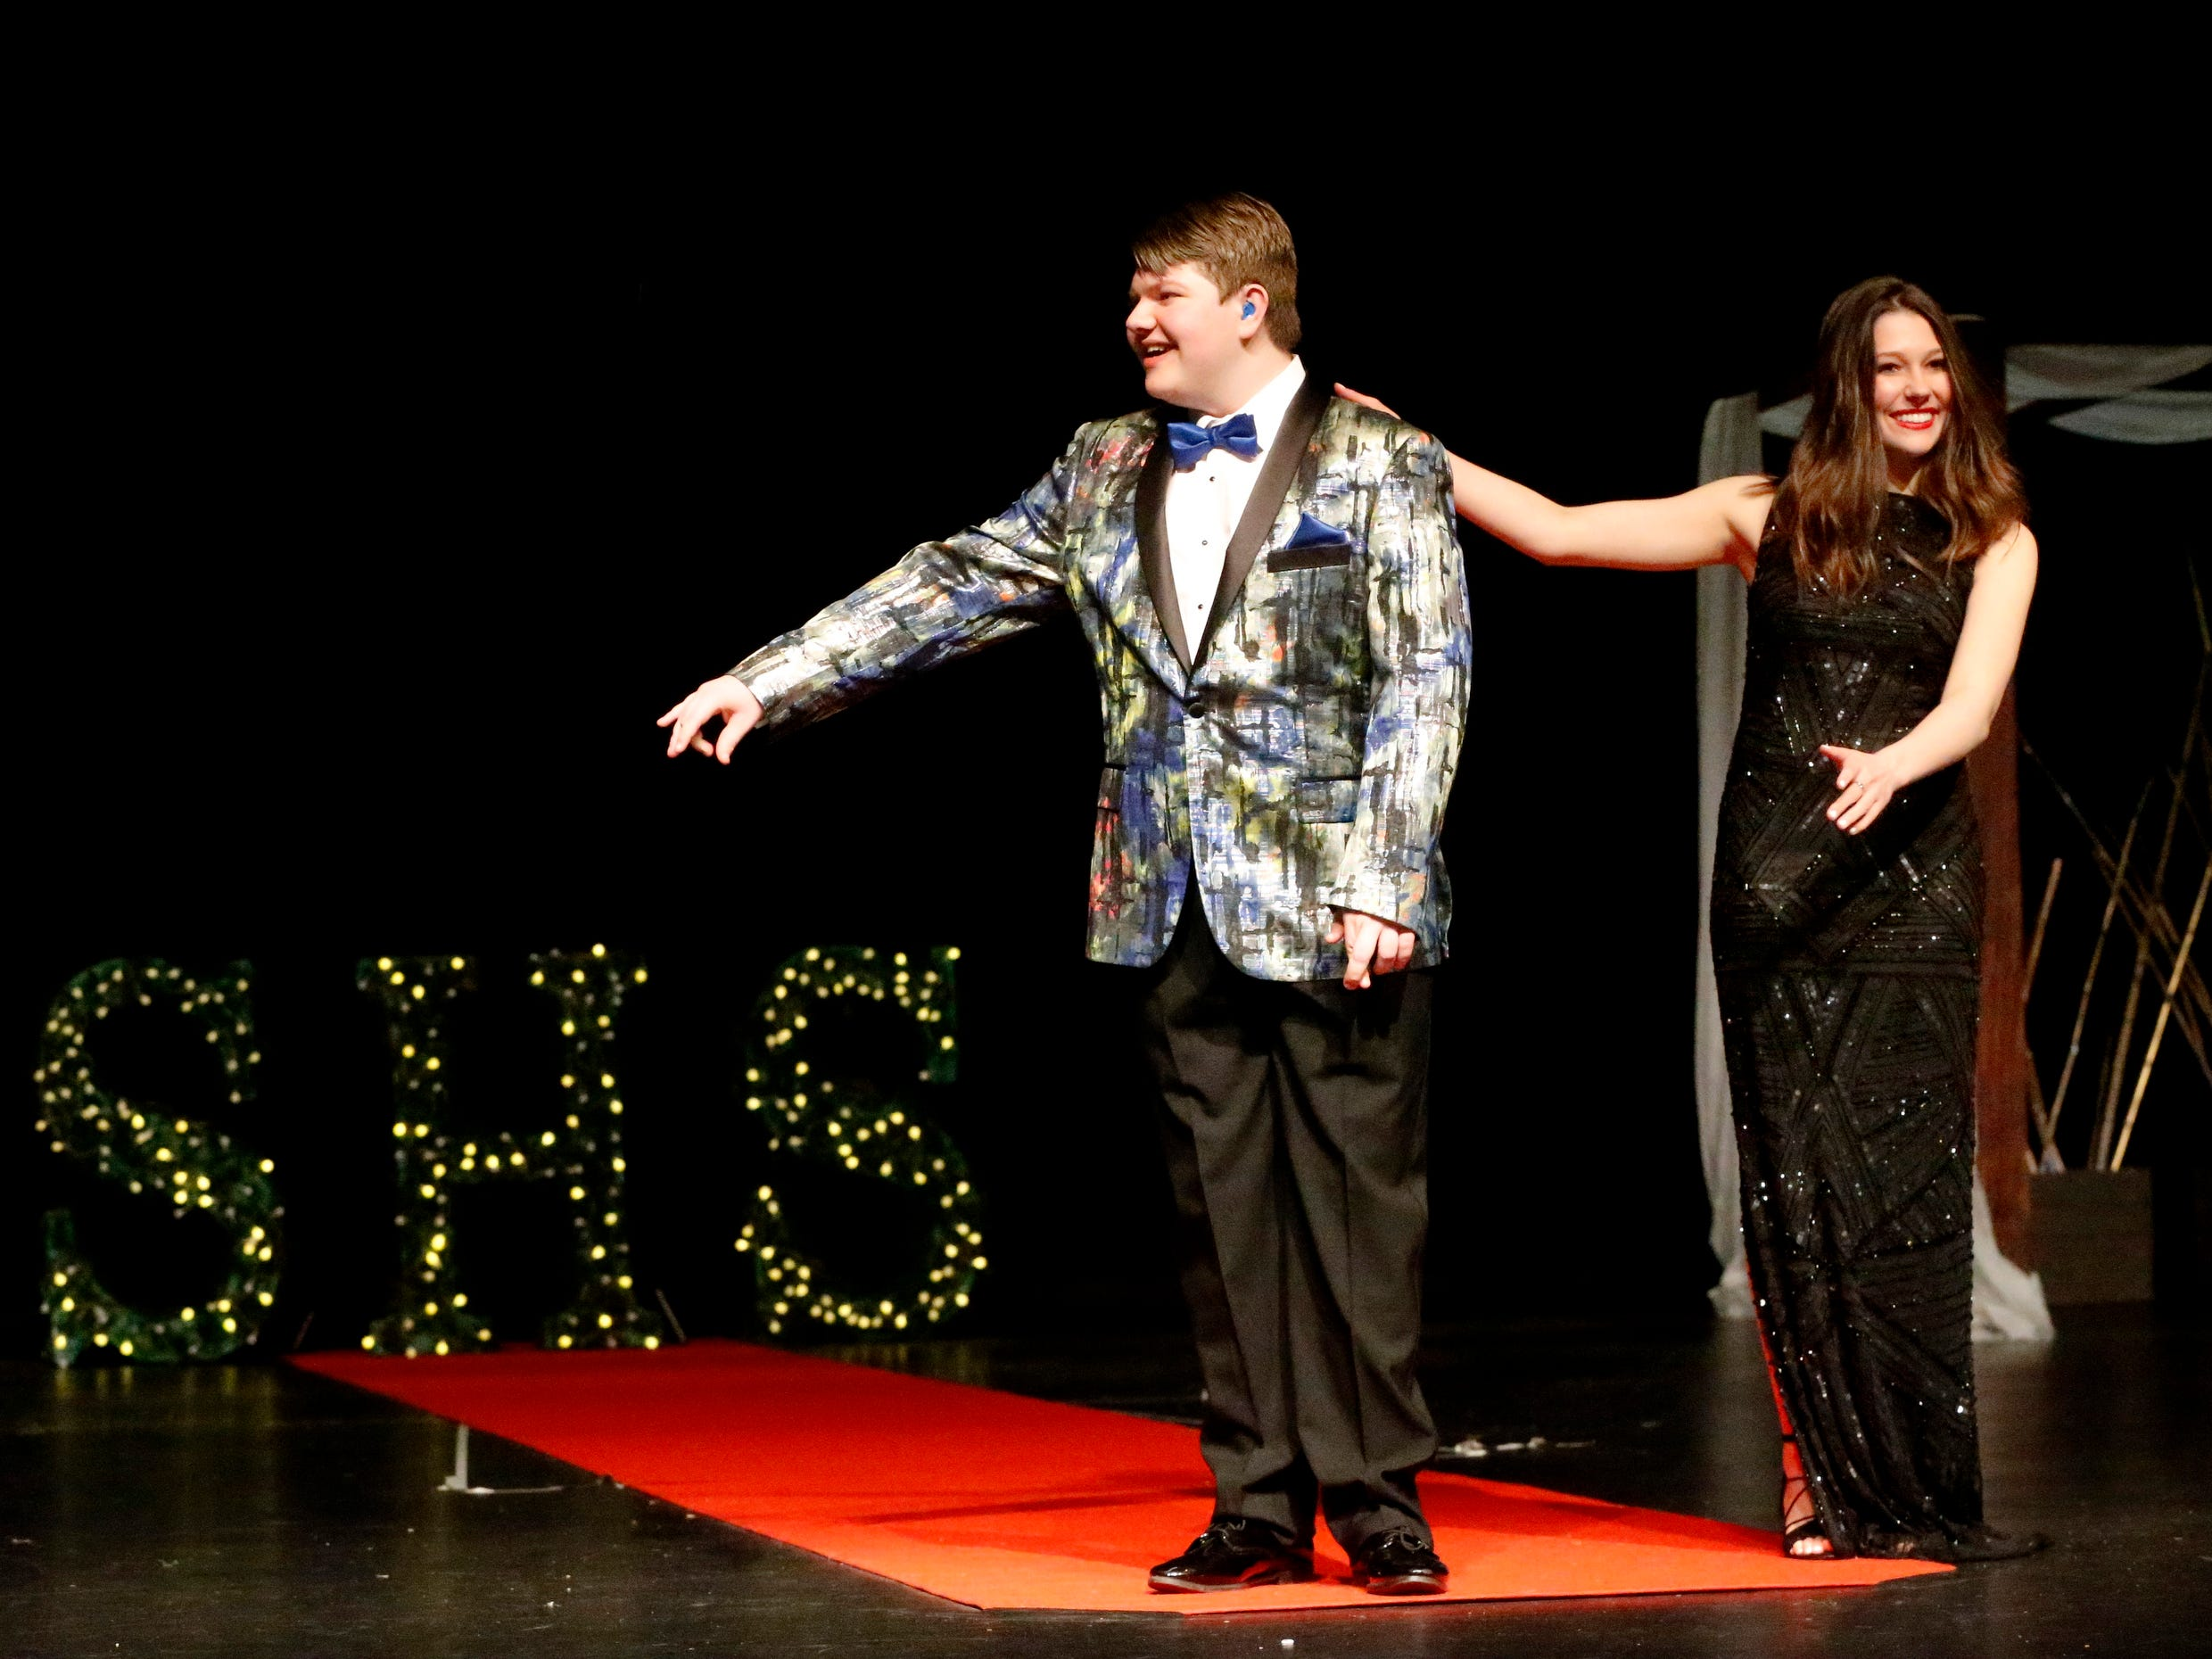 Tyler Persinger, left and Jordan Black, right show off the latest in prom fashions during the Siegel Prom Fashion show on Thursday, Feb. 14, 2019.